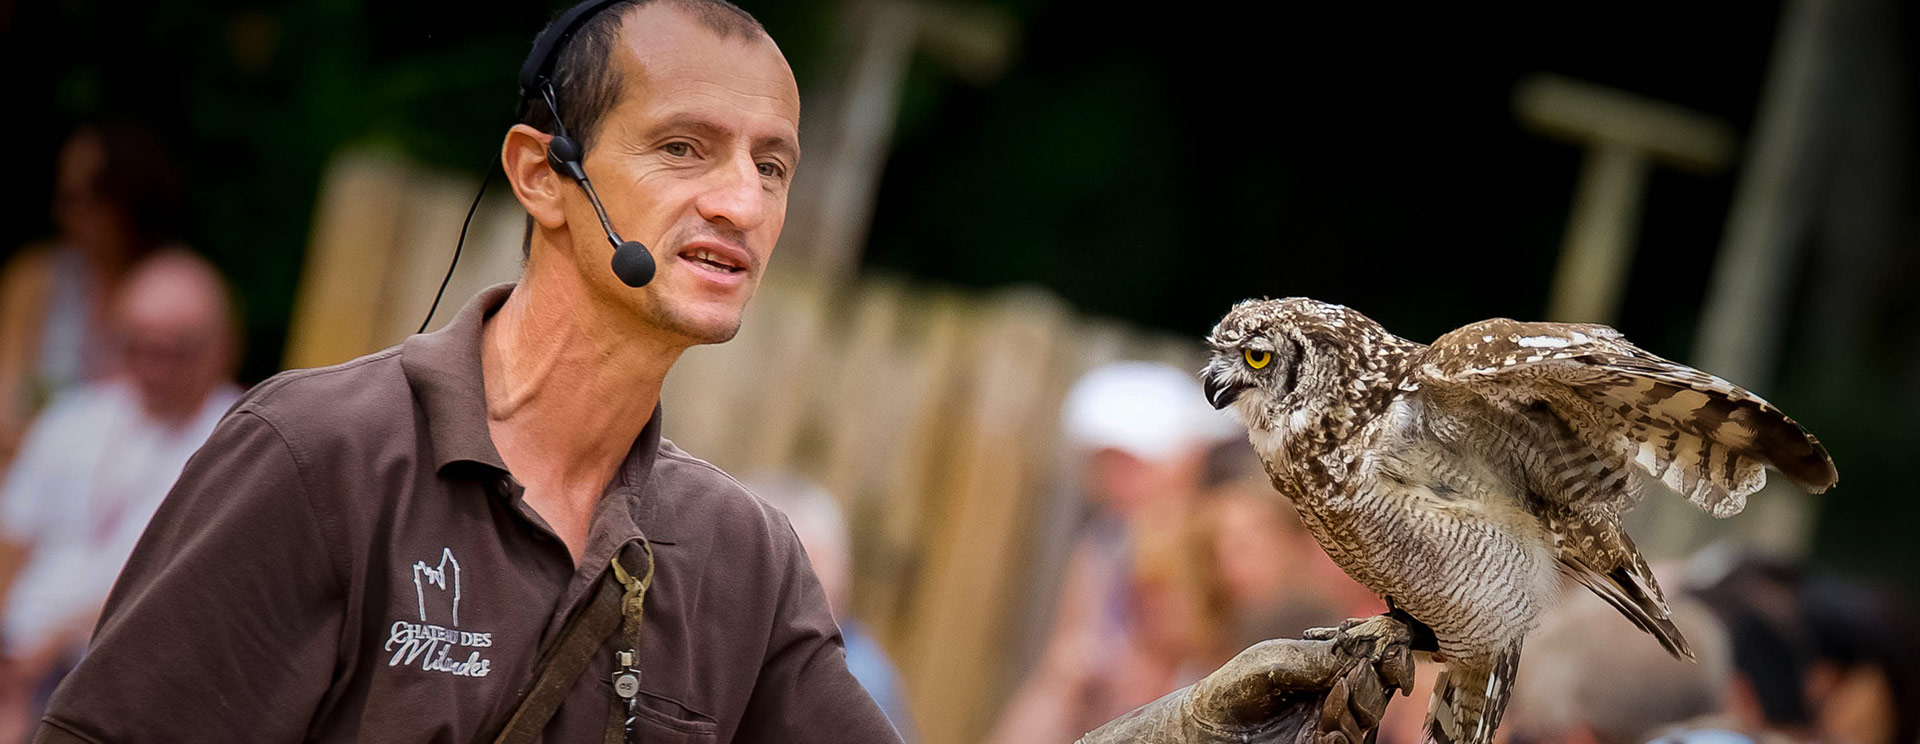 Birds of Prey Display - A fun presentation of protected species